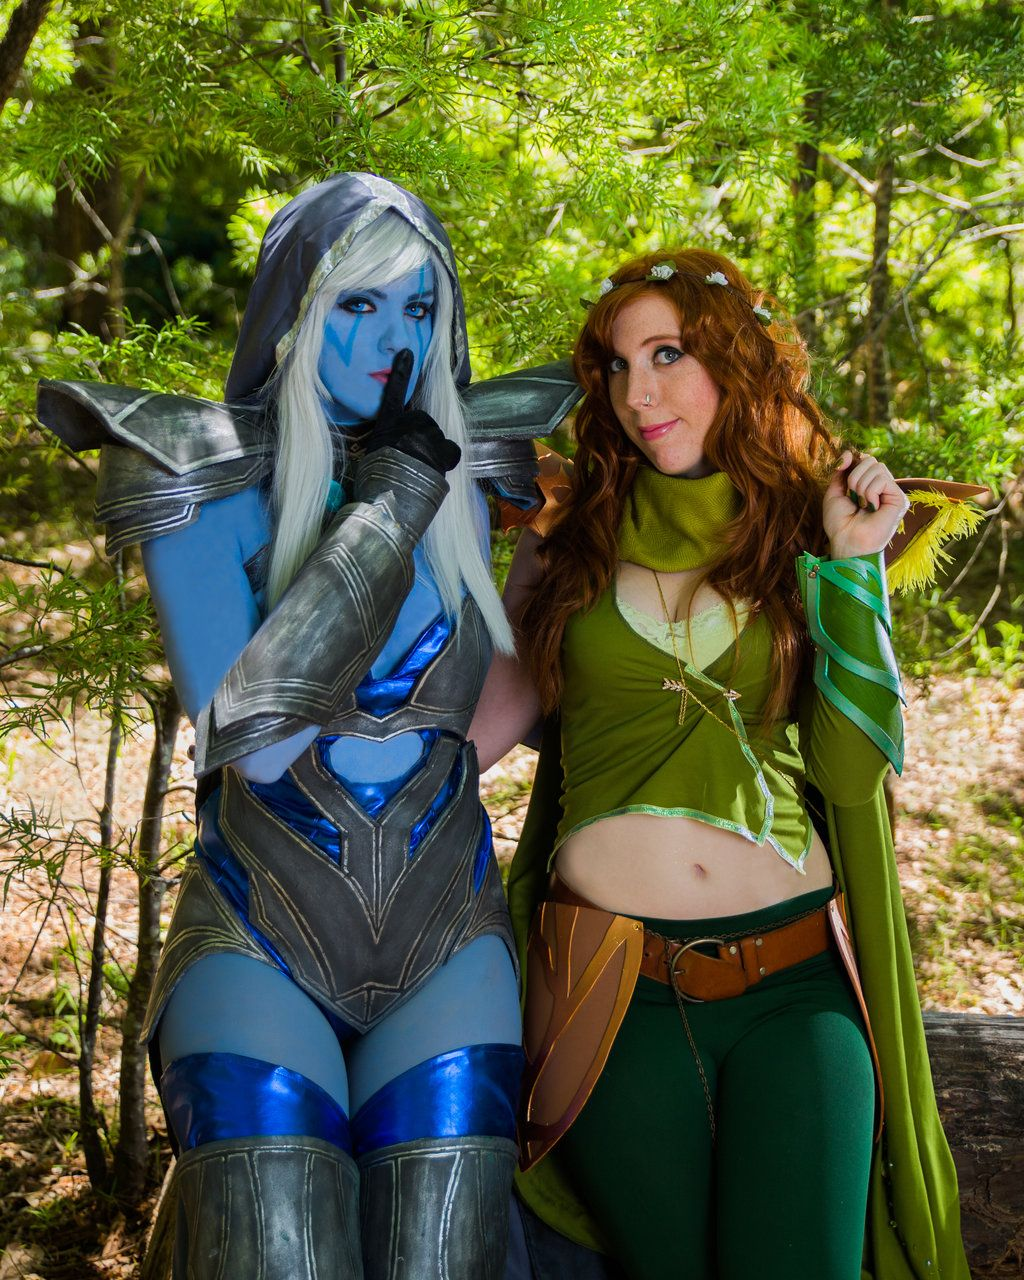 Drow Ranger And Windranger Cosplay From Dota 2 A Dota 2 Cosplay